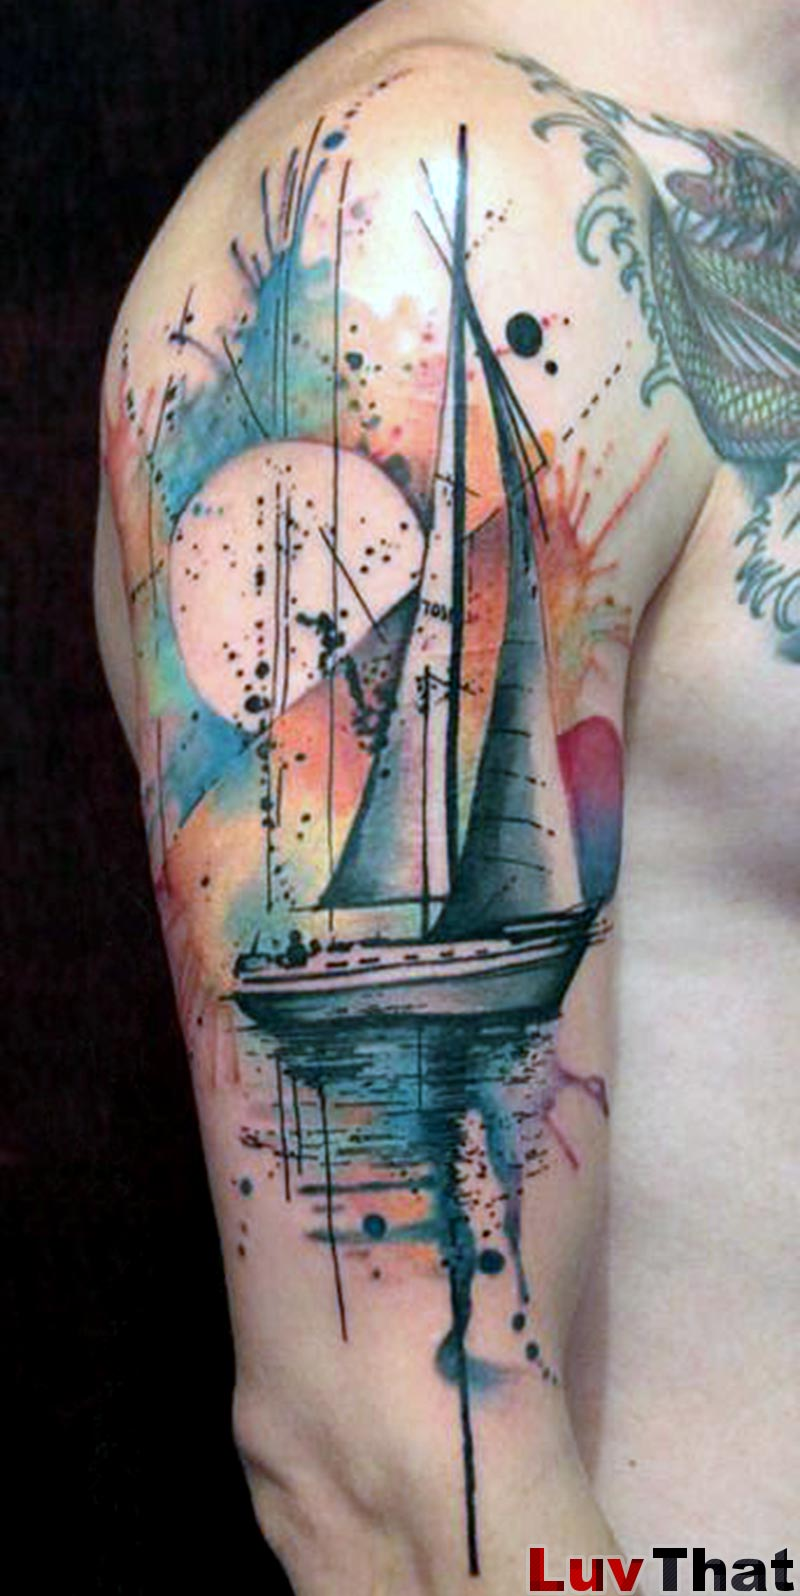 25 amazing watercolor tattoos luvthat. Black Bedroom Furniture Sets. Home Design Ideas